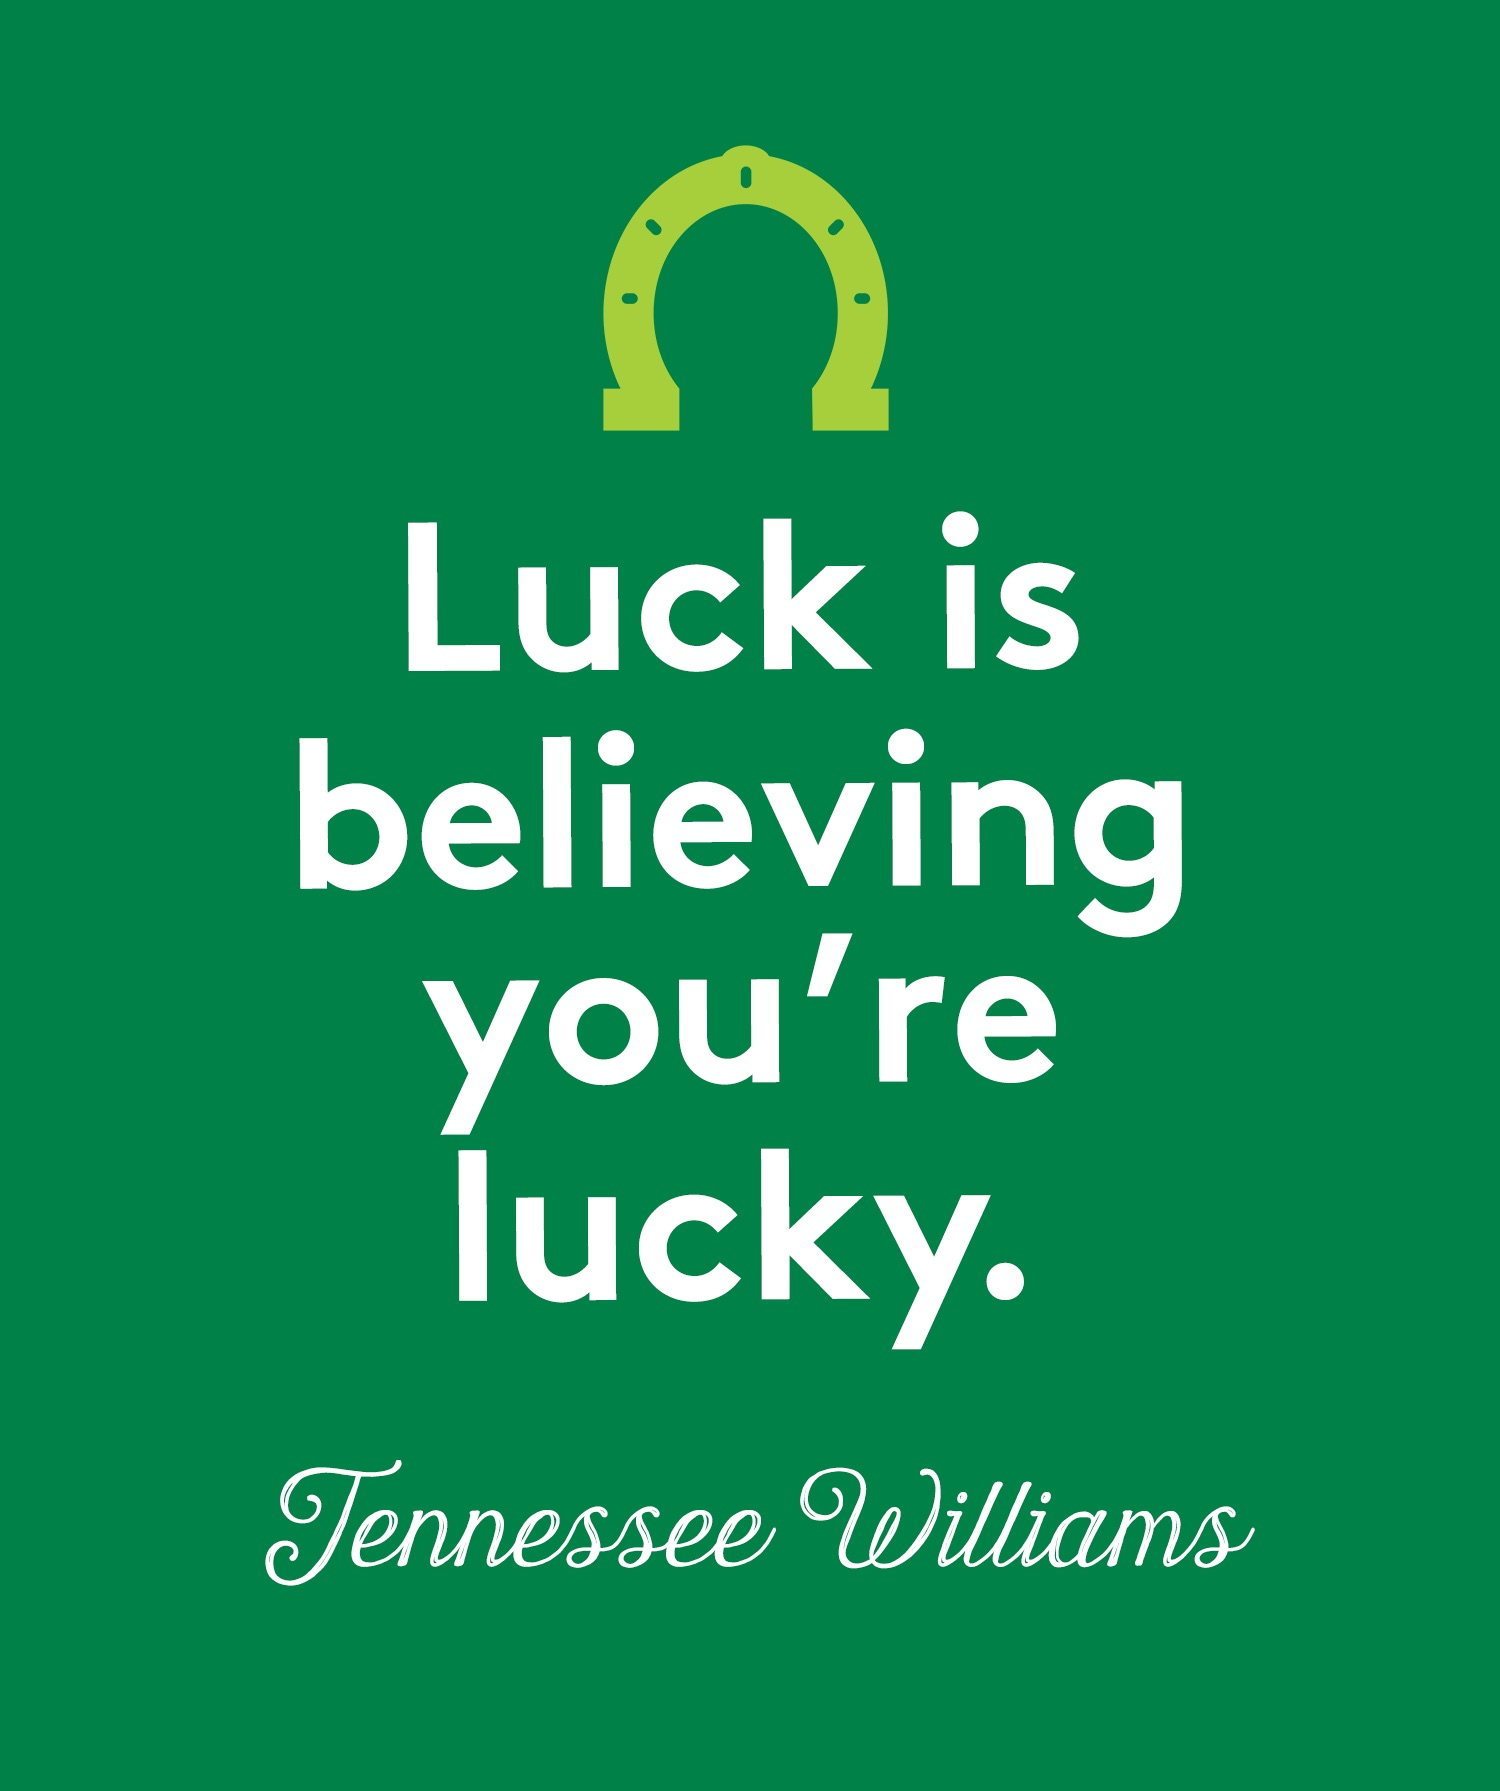 St. Patrick's Day Quotes, Williams